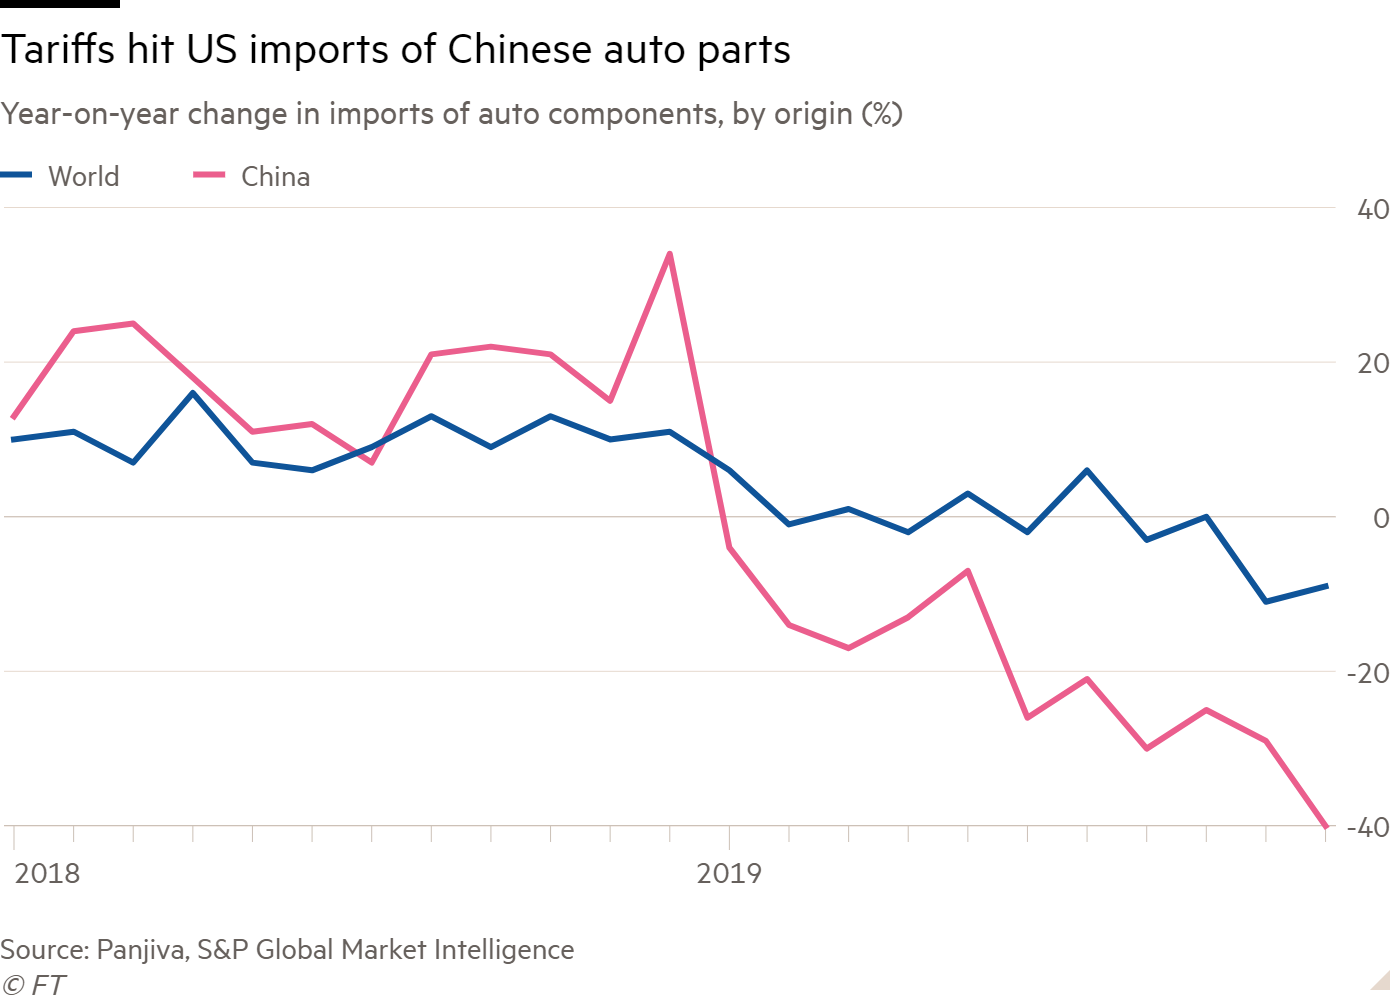 Line chart of Year-on-year change in imports of auto components, by origin (%) showing Tariffs hit US imports of Chinese auto parts